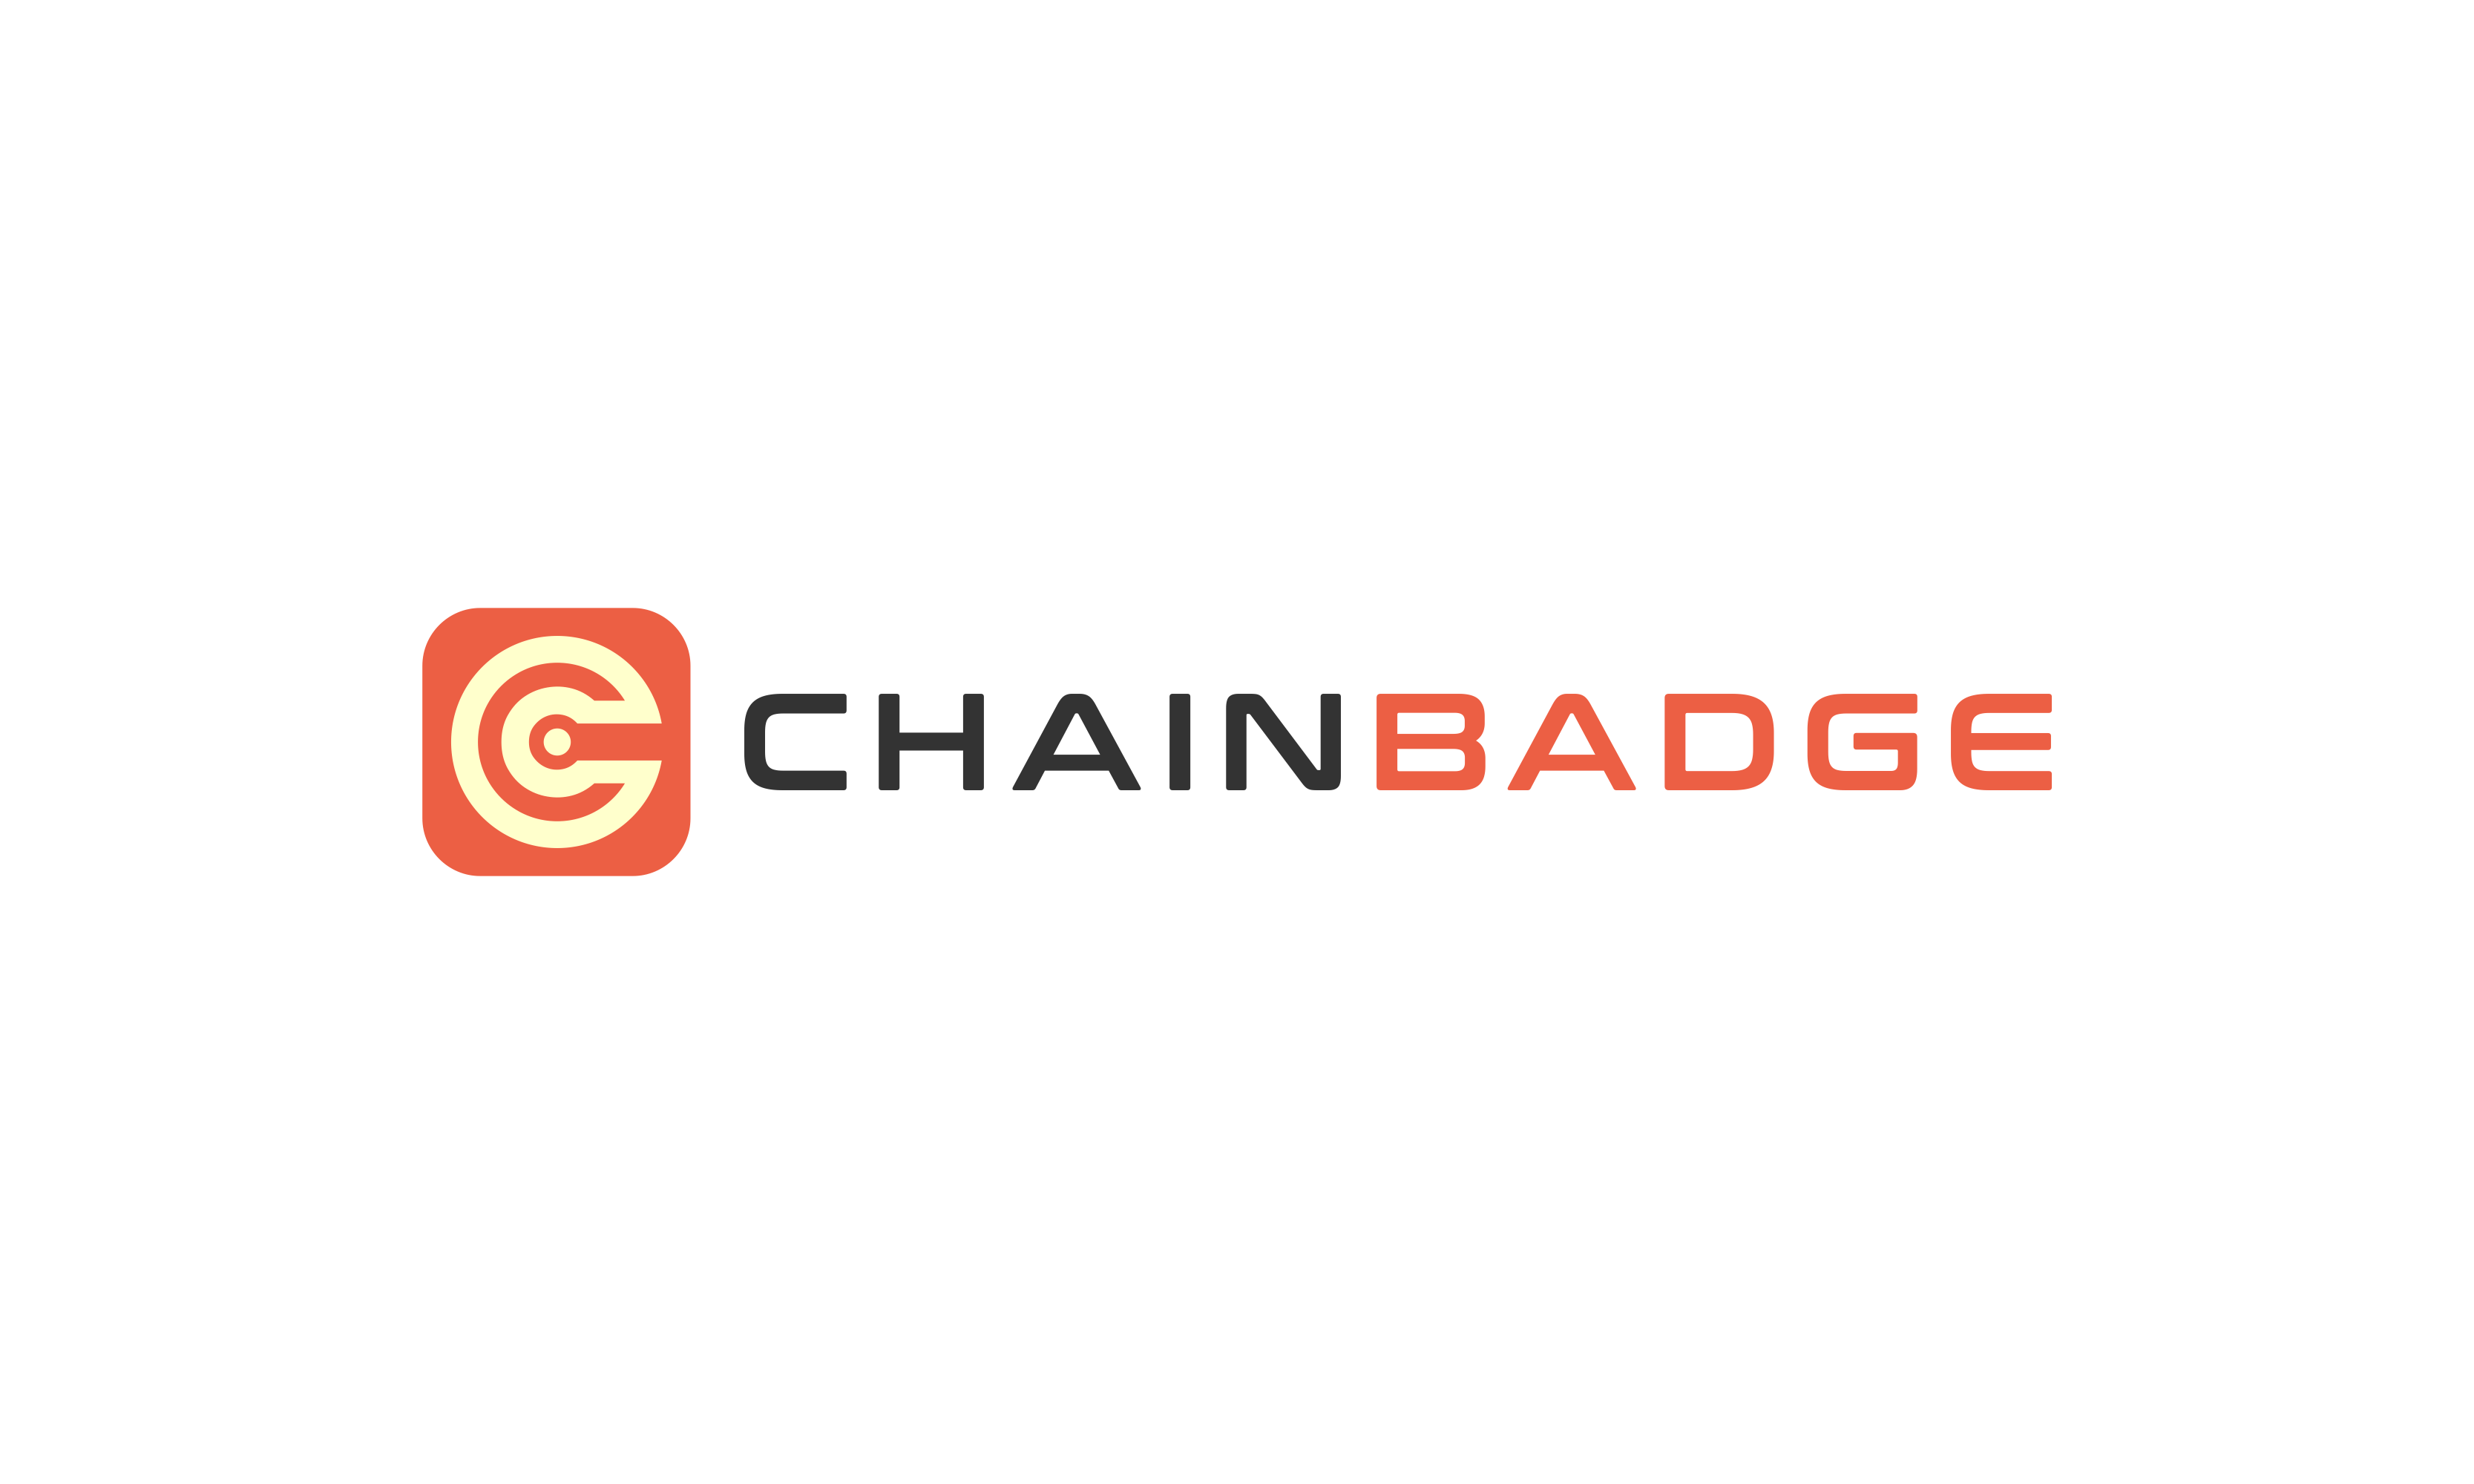 Chainbadge